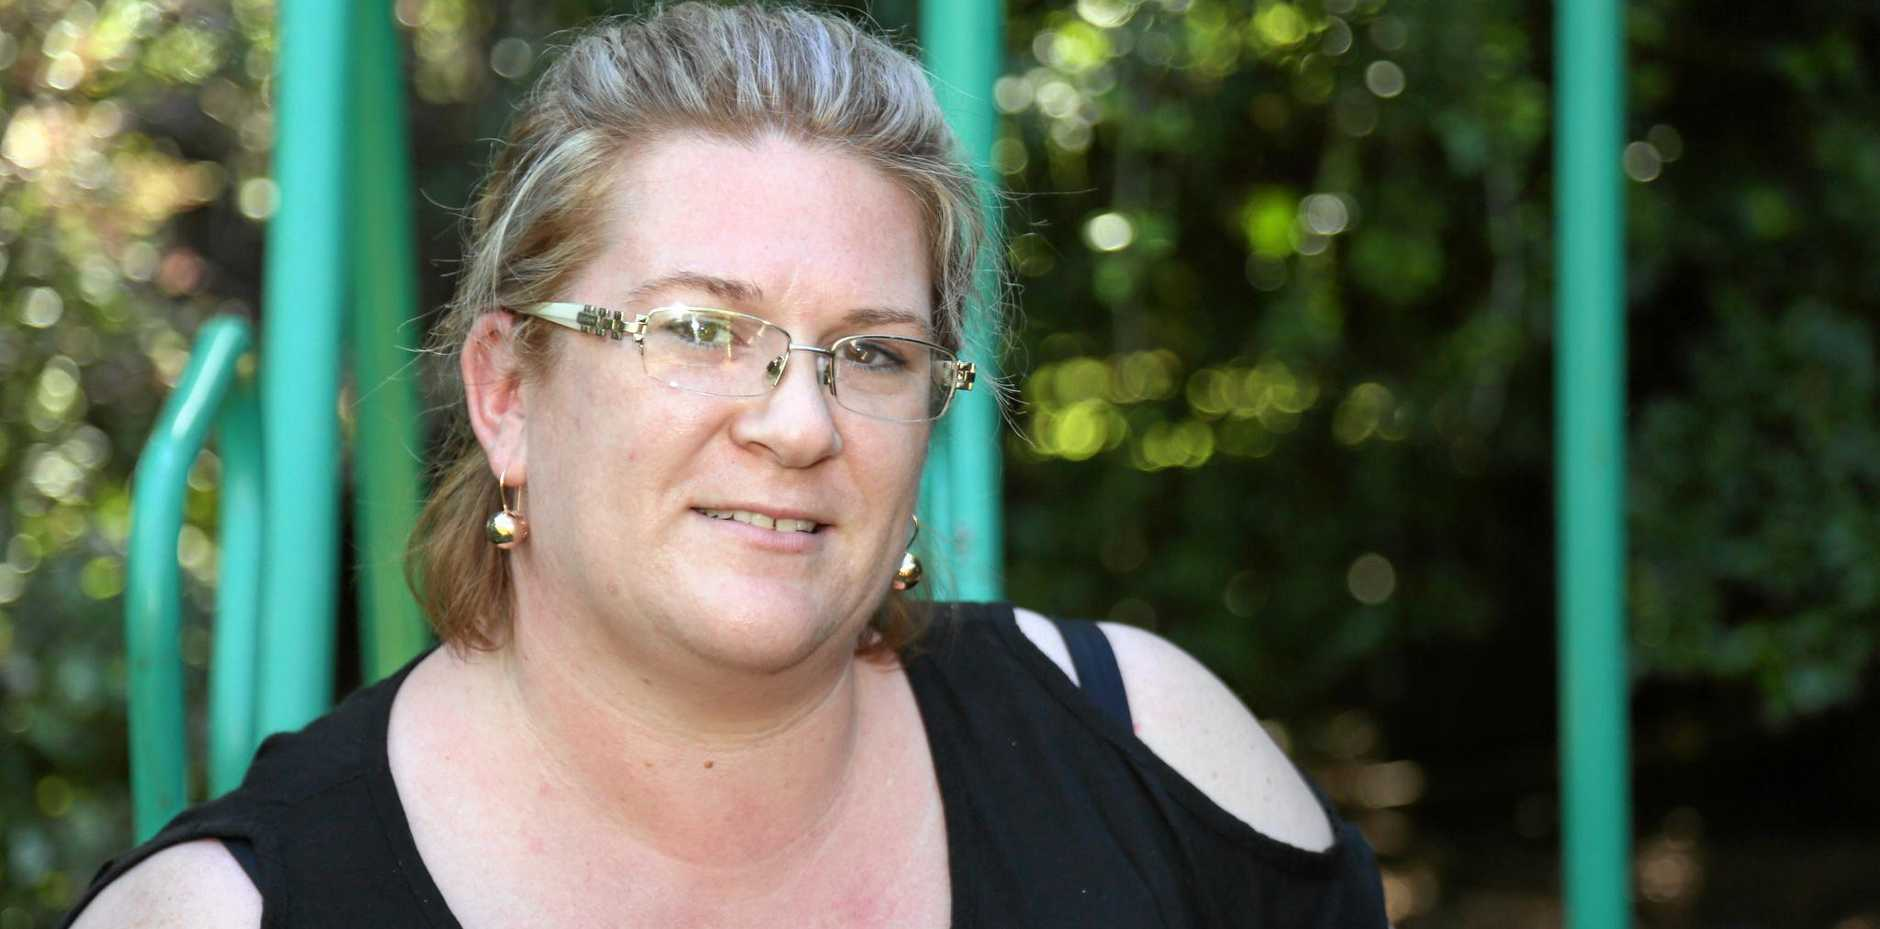 Childers mother Larissa Watson is looking forward to further improvements thanks to the NDIS